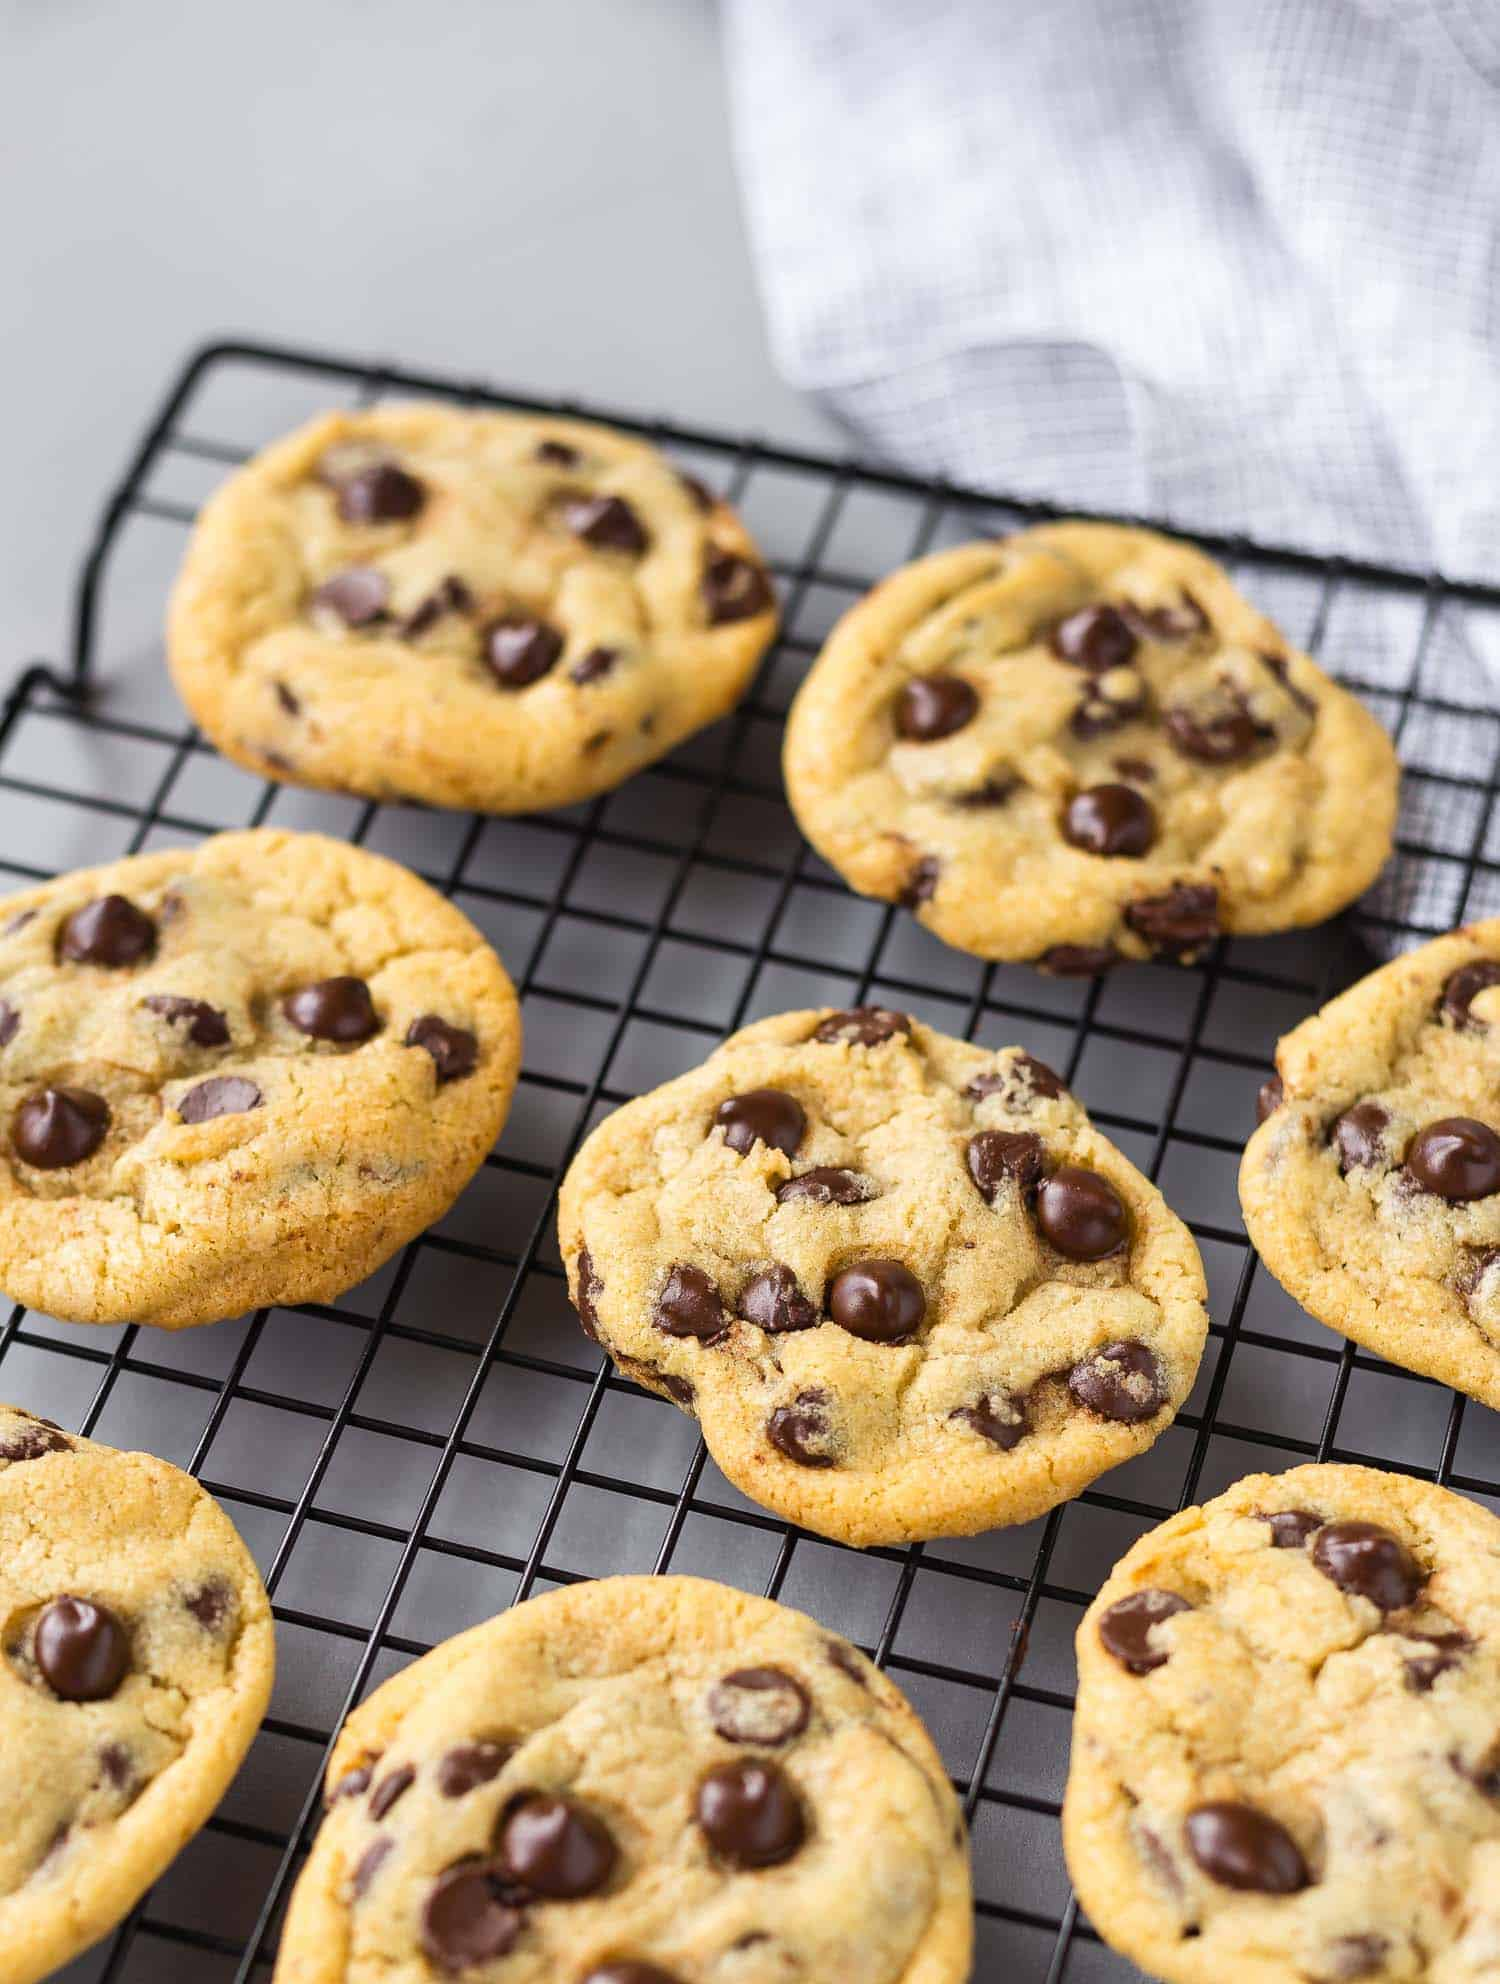 Cookies studded with chocolate chips on a cooling rack.